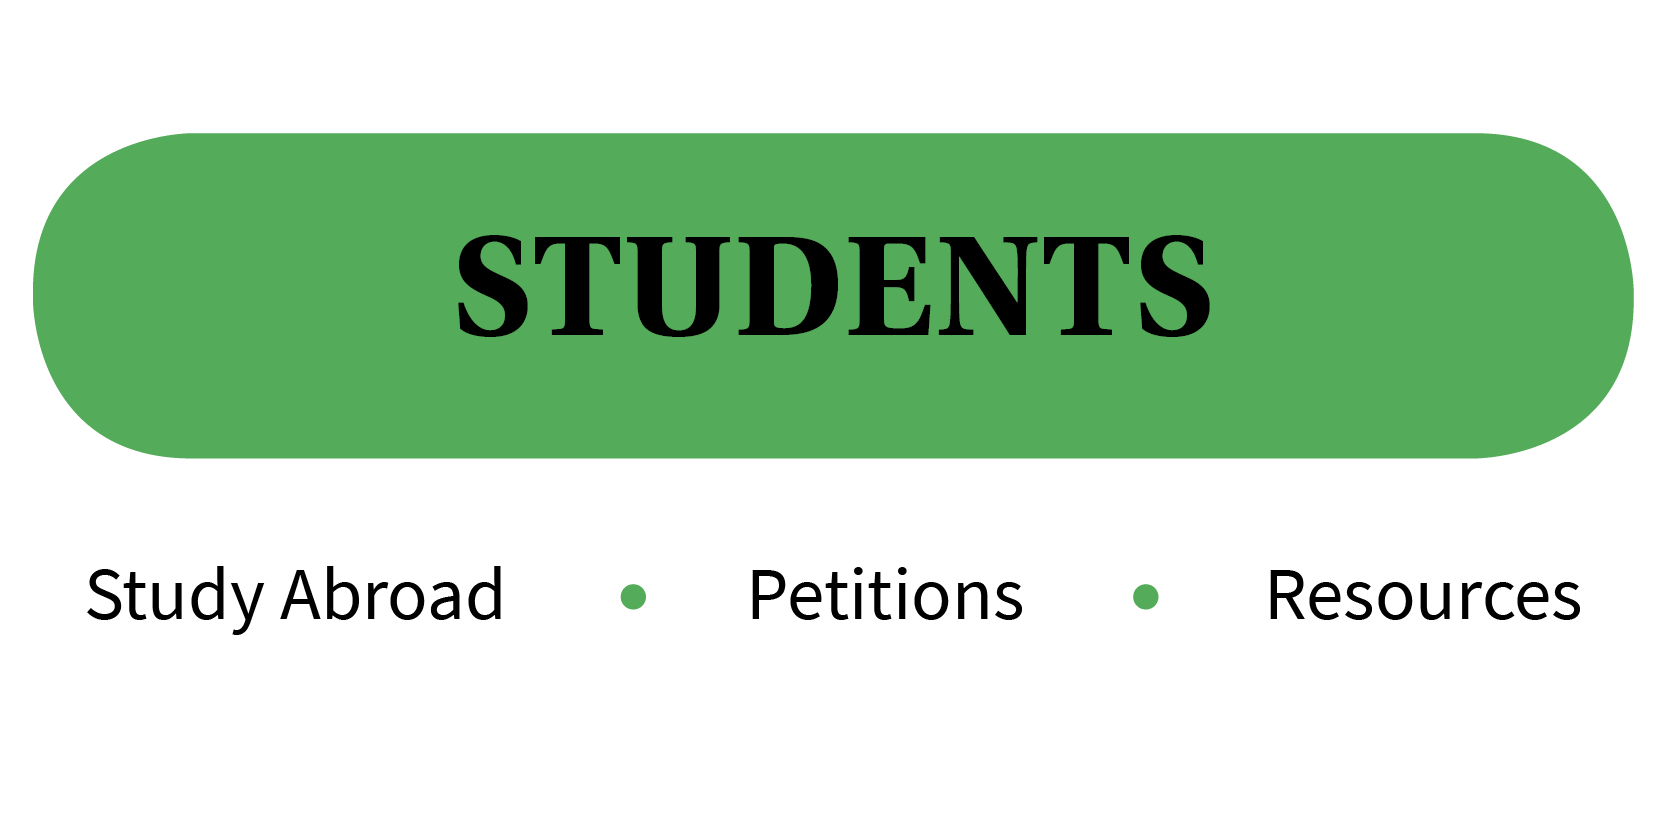 Students -- Study Abroad, Petitions, and Resources